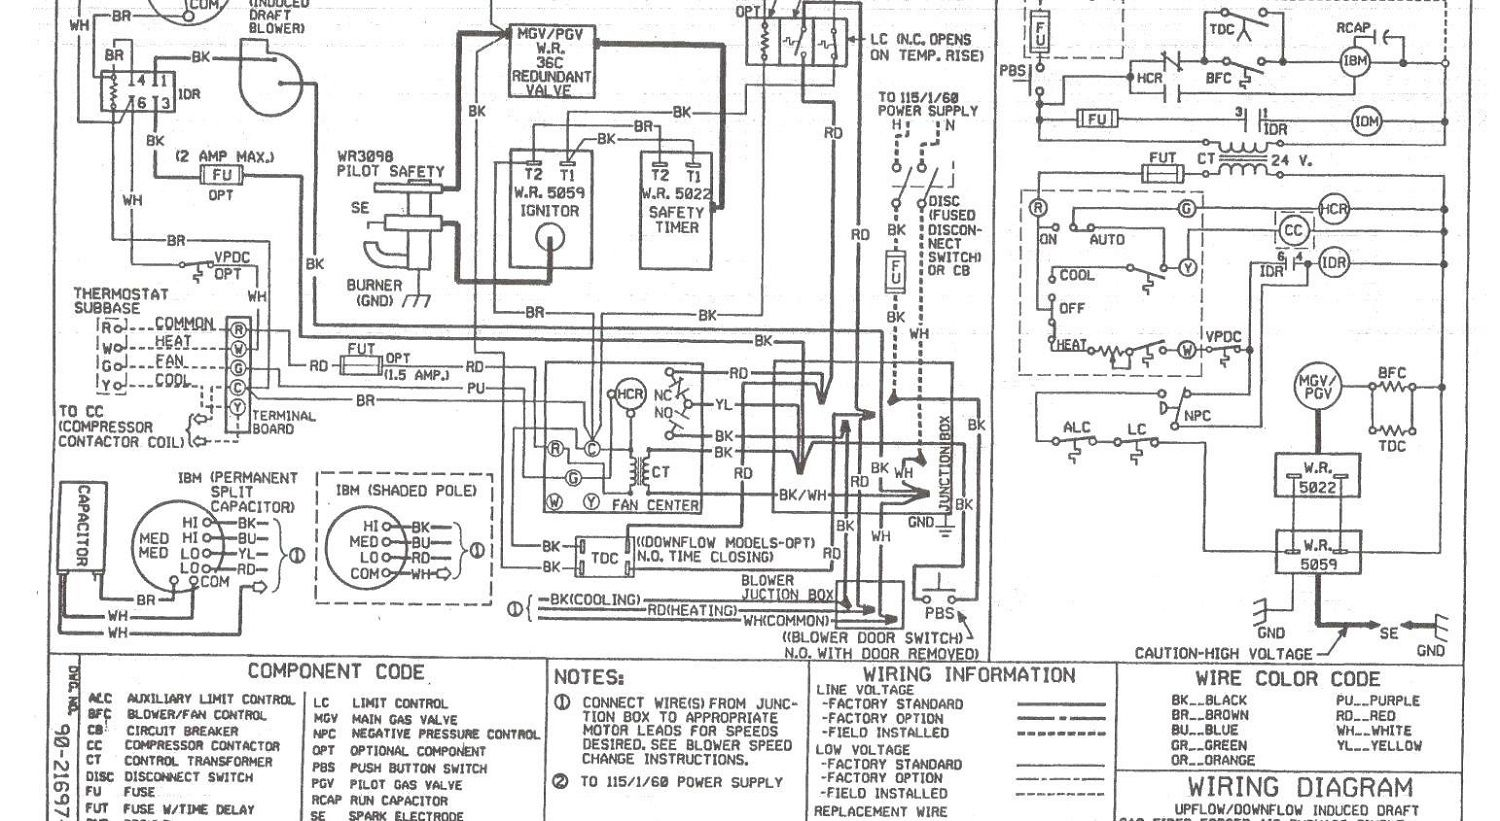 Heat Pump Diagrams